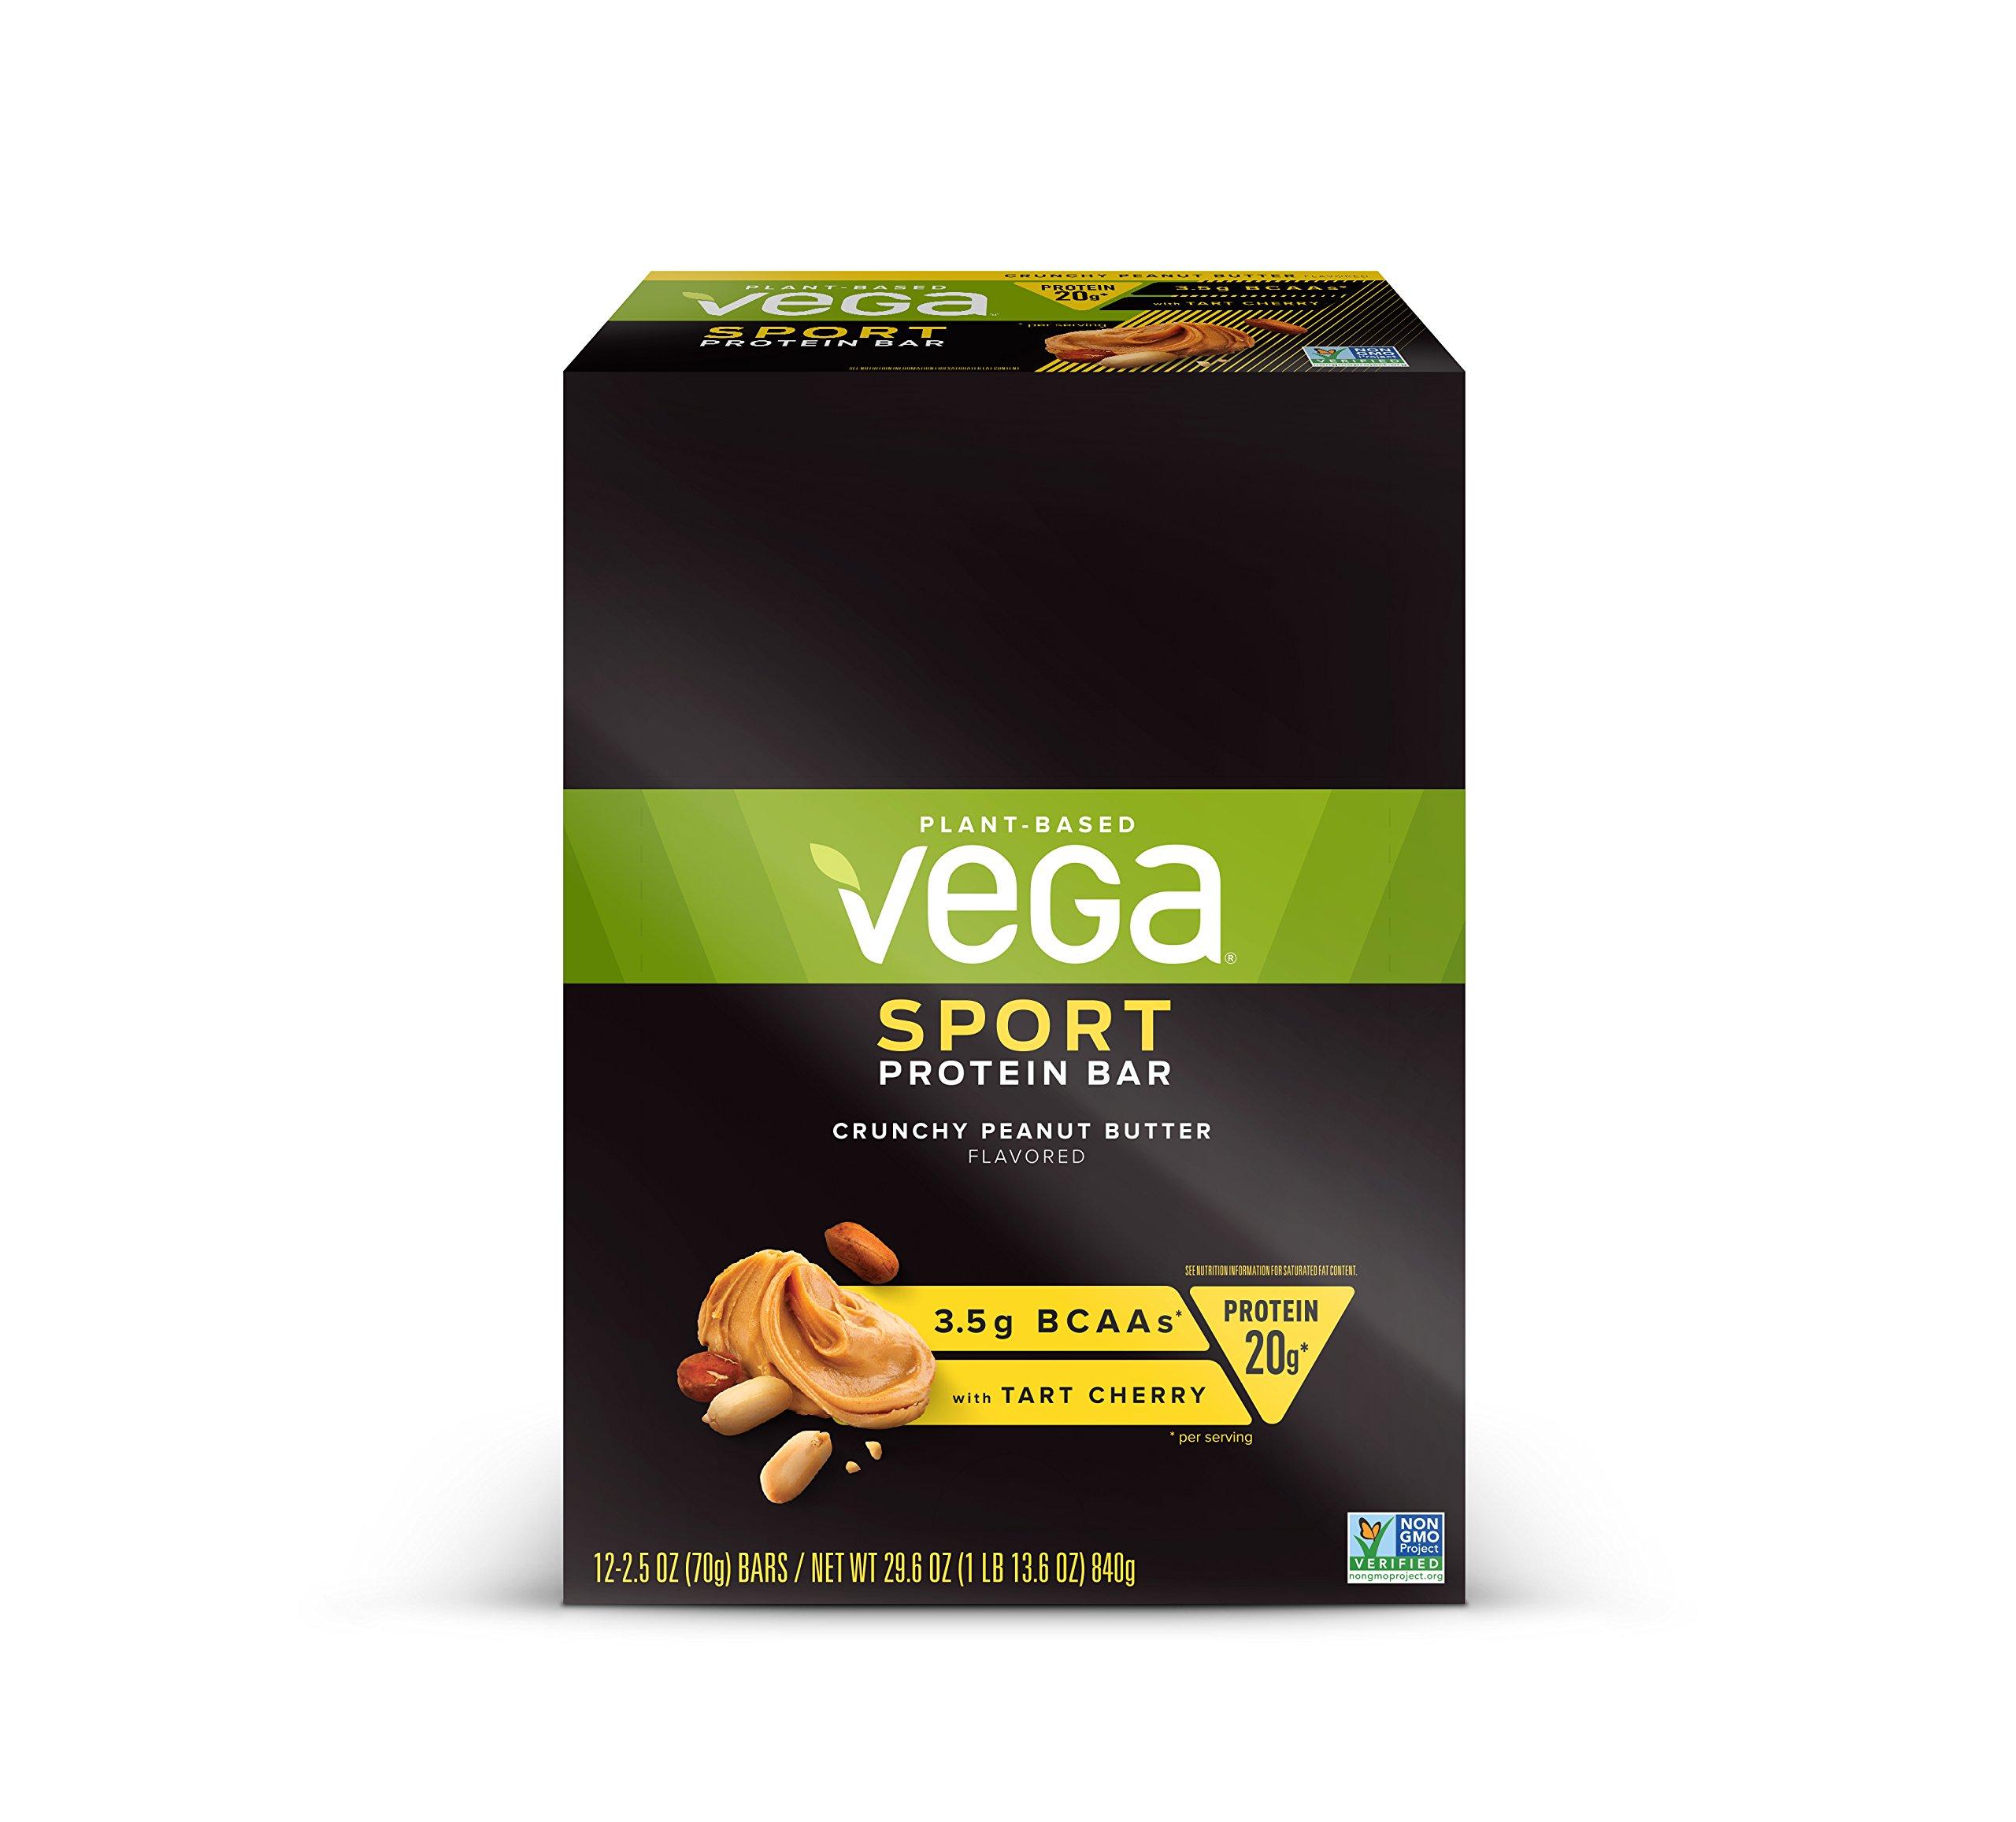 Vega Sport Protein Bar Crunchy Peanut Butter (12 Count) - Plant Based Vegan Protein Bars, Non Dairy, Gluten Free, Non GMO by Vega